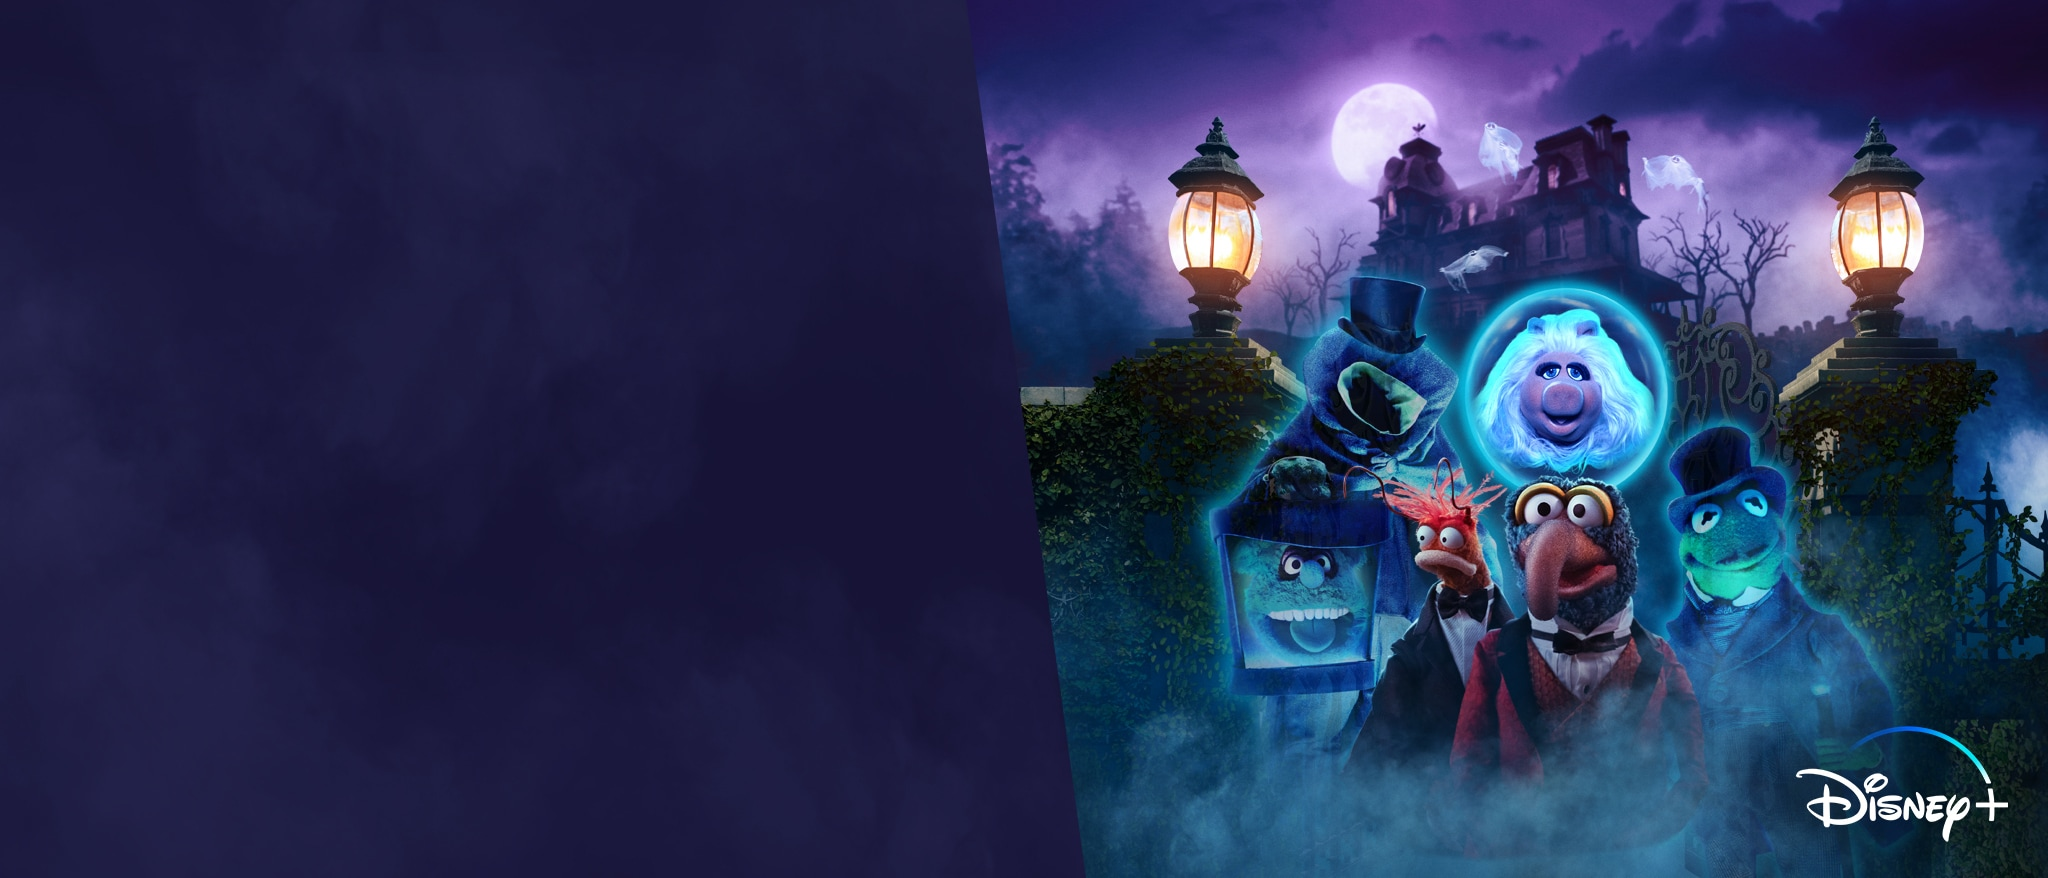 Hero - Disney+ - Muppets Haunted Mansion Now Streaming